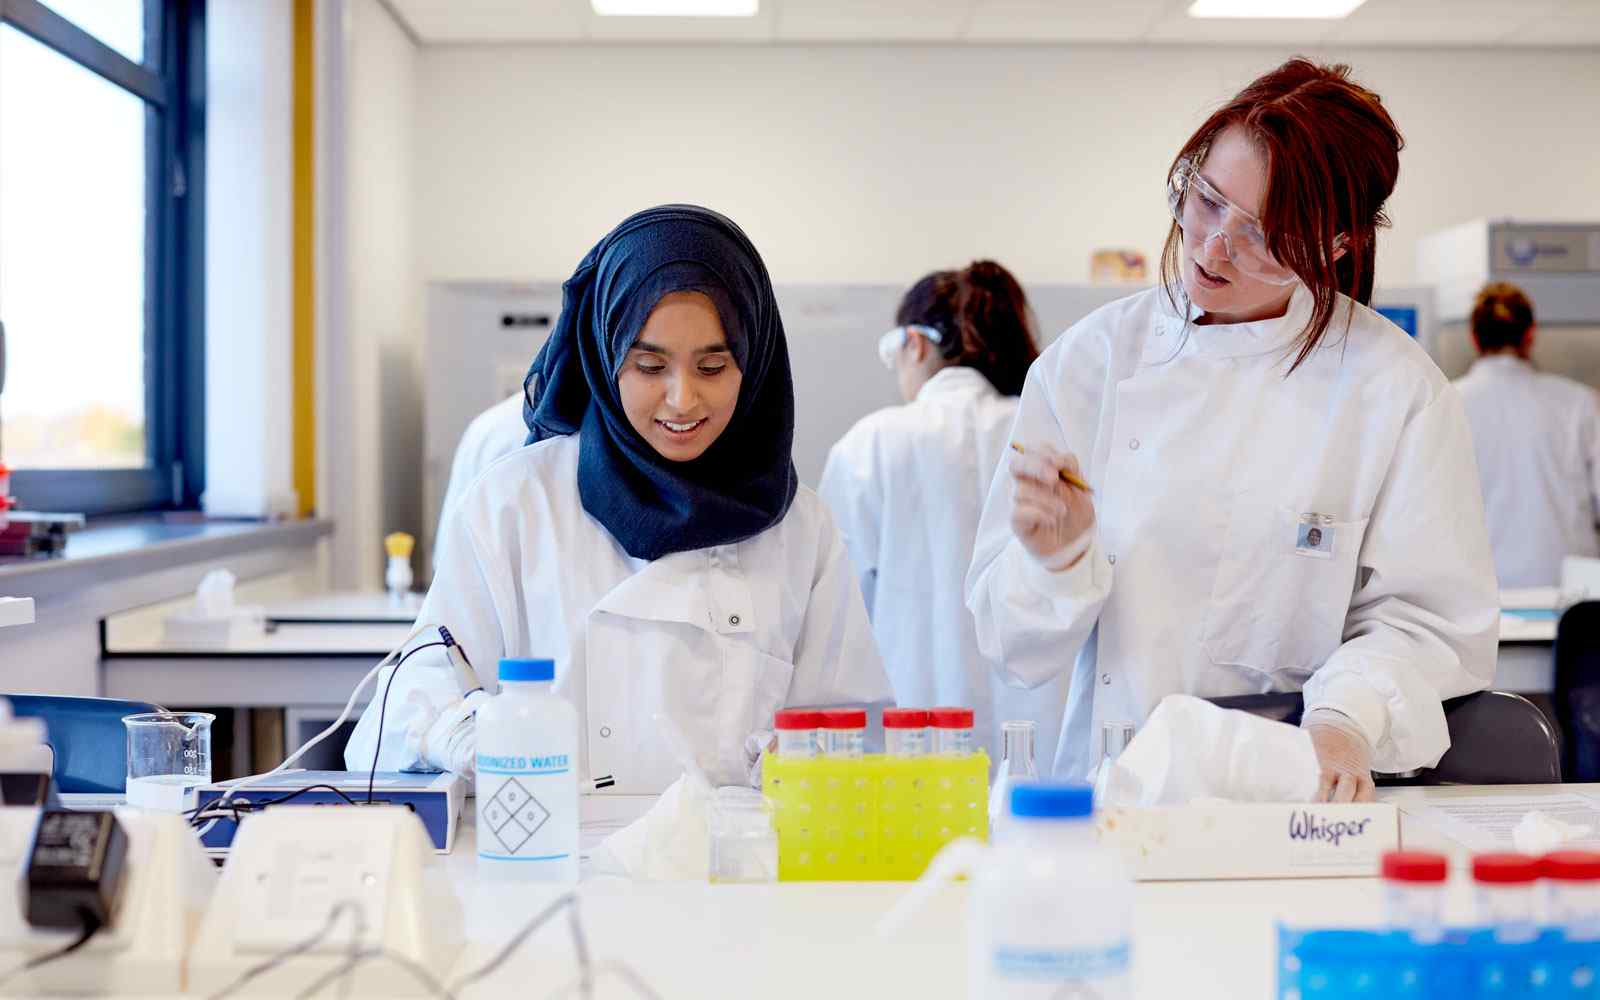 Two health science students working in labs